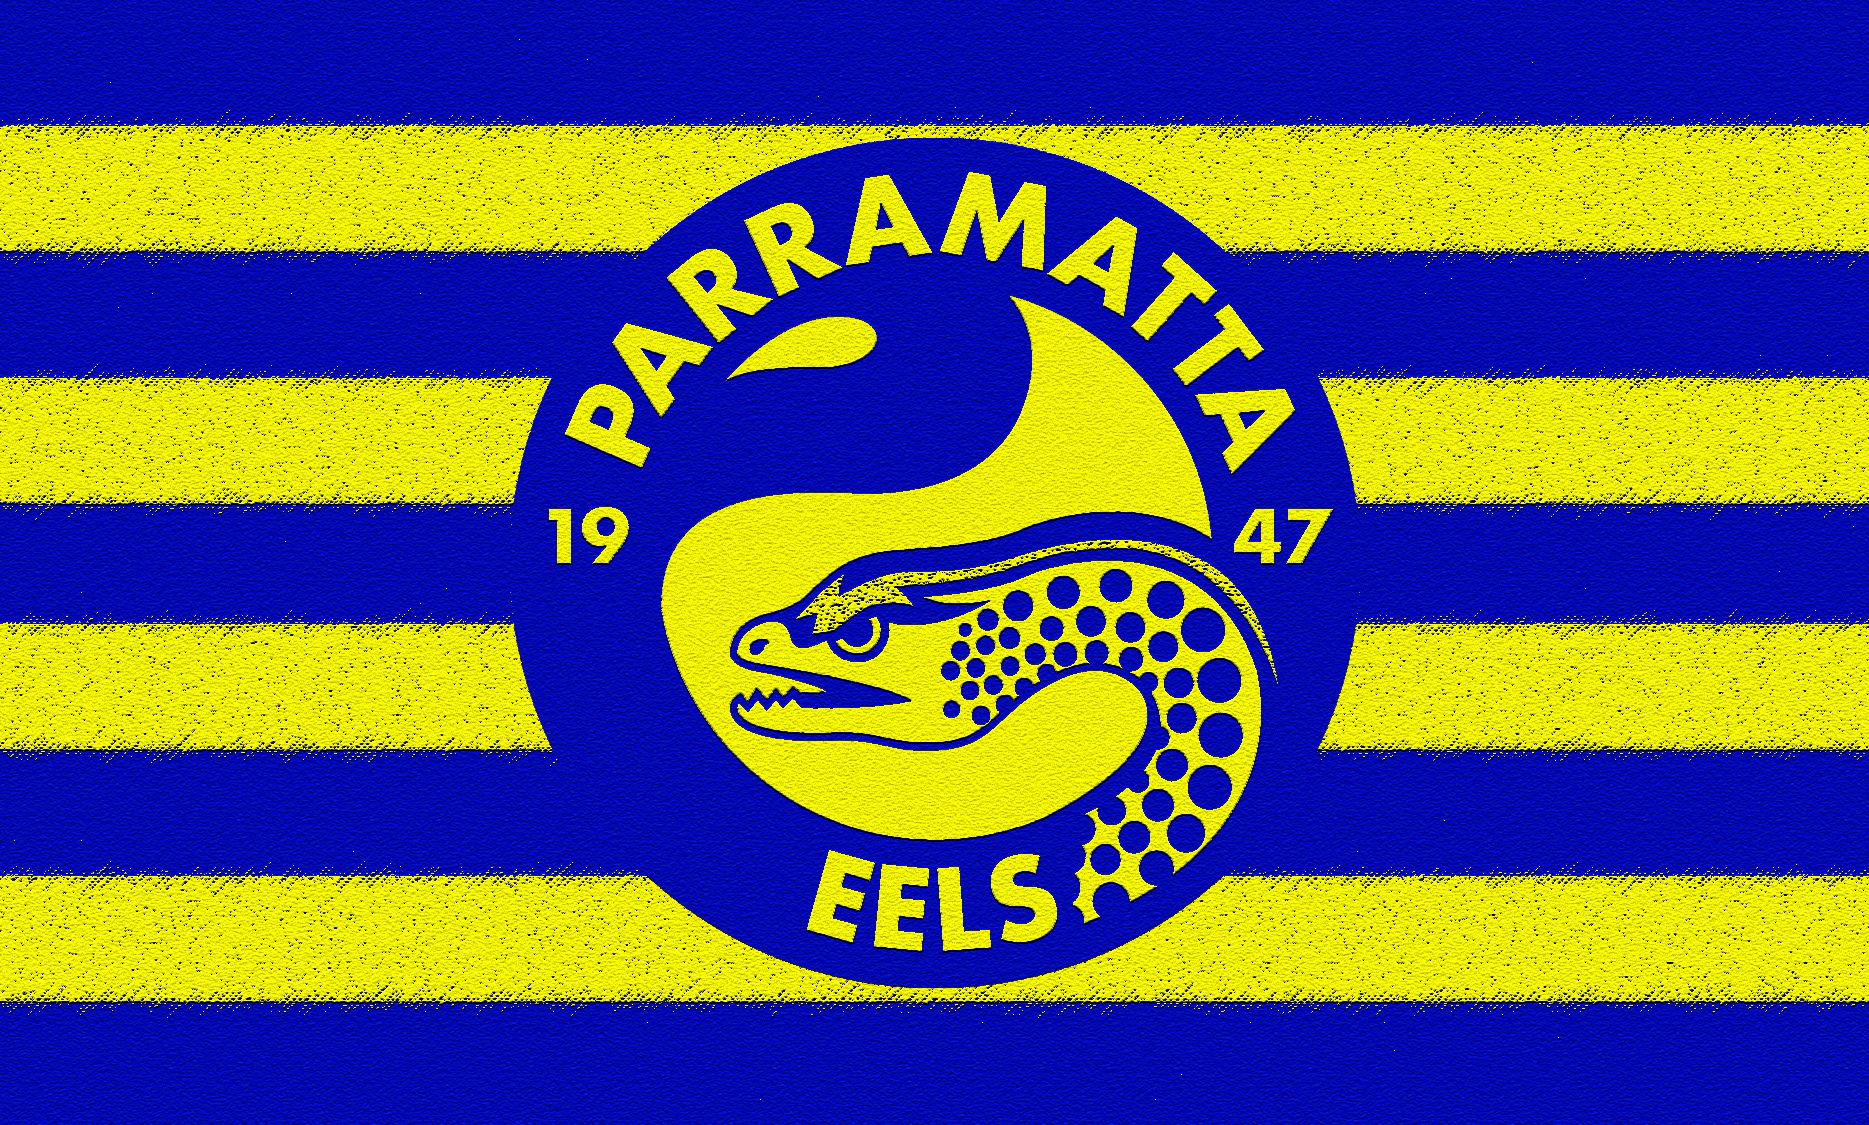 Parramatta Eels Striped Wallpaper By Sunnyboiiii Blue Yellow Football Team Logos National Rugby League Sports Team Logos